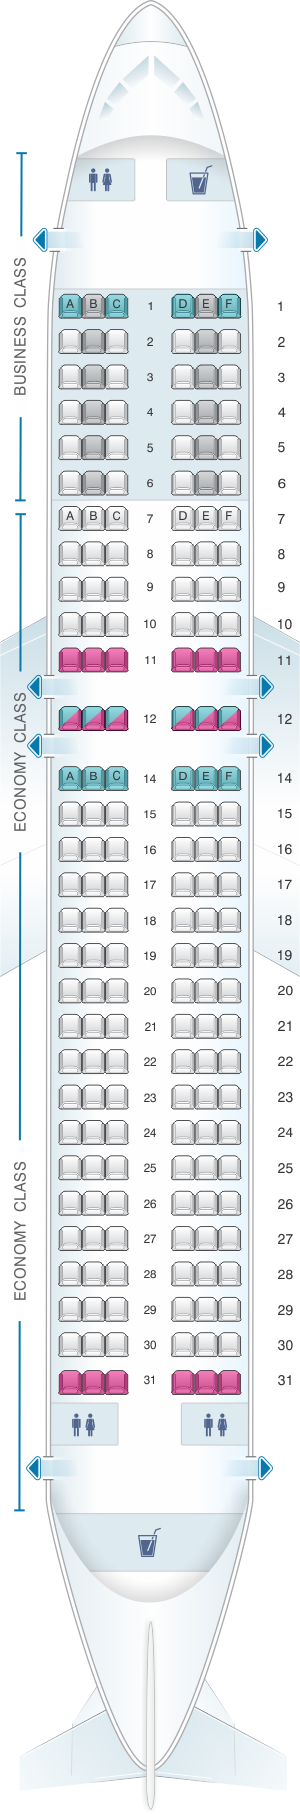 Seat map for Iberia Airbus A320